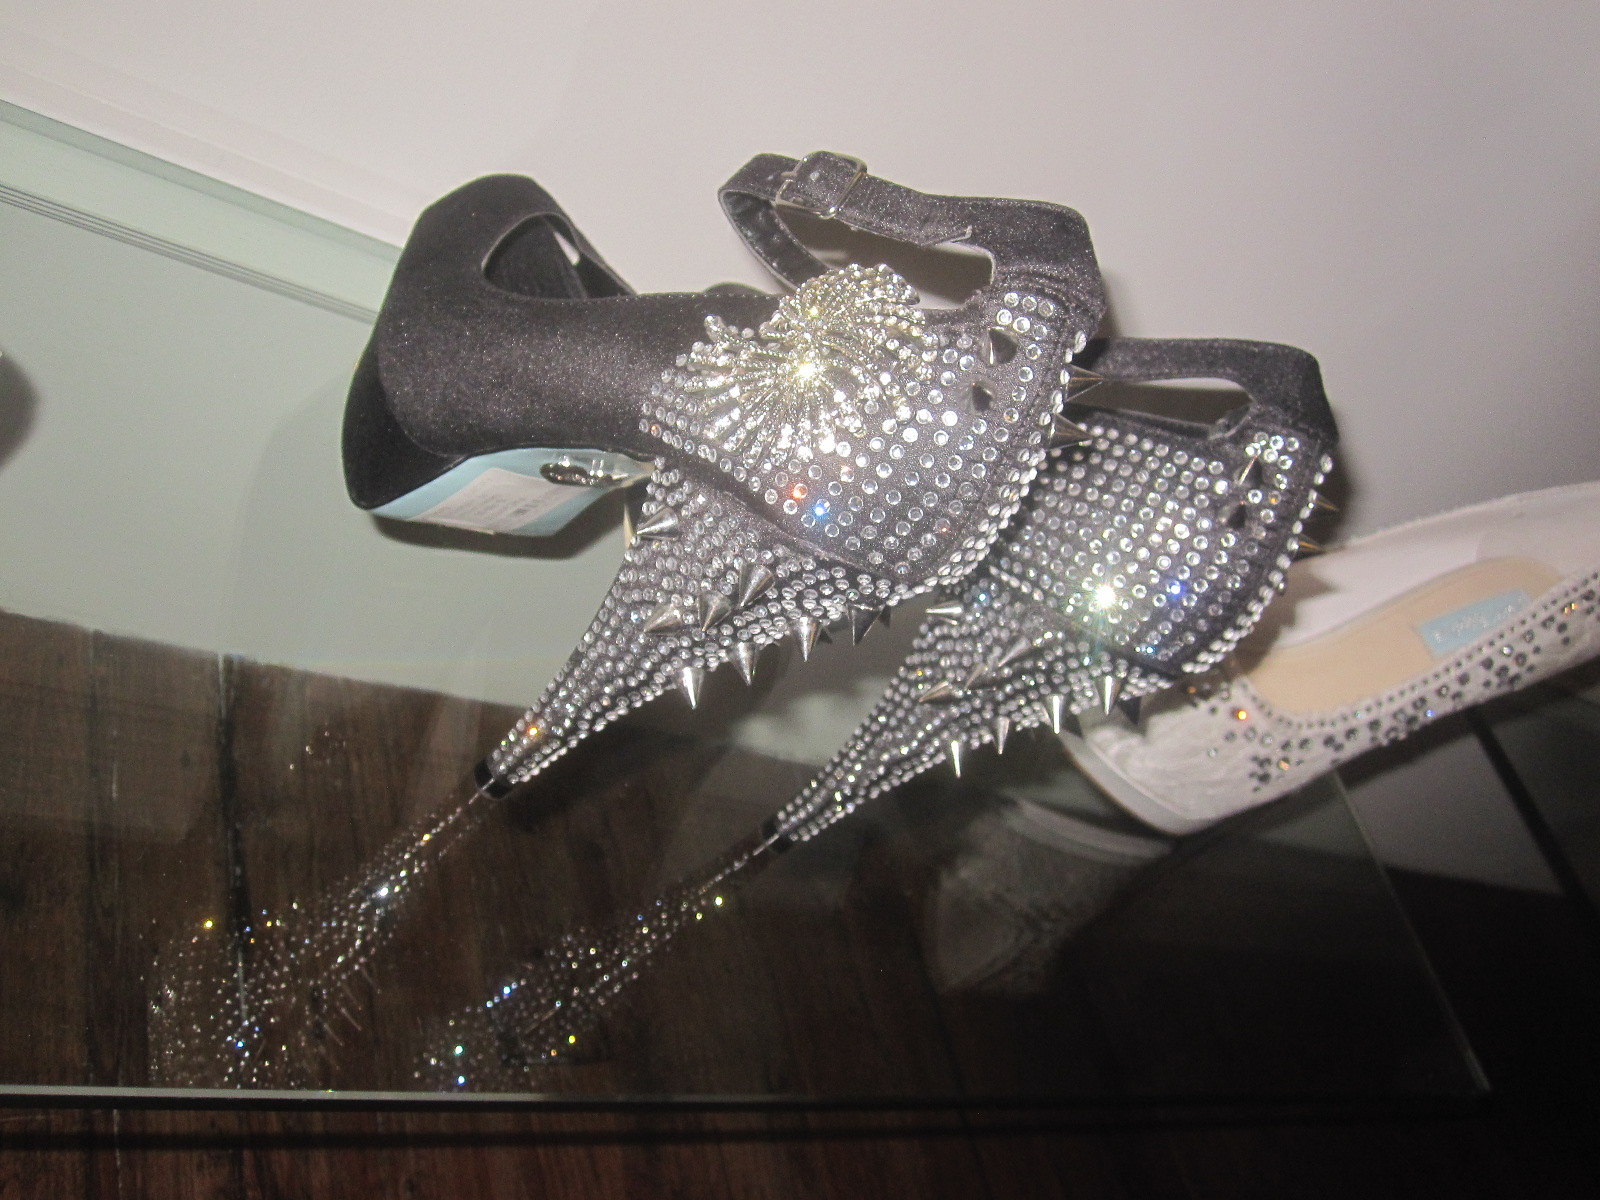 zahia dehar betsey johnson wedding shoes Betsey Johnson a Memoirs favorite Betsey always brings funk and flair to her designs Her showroom collection involves her new wedding line simply called